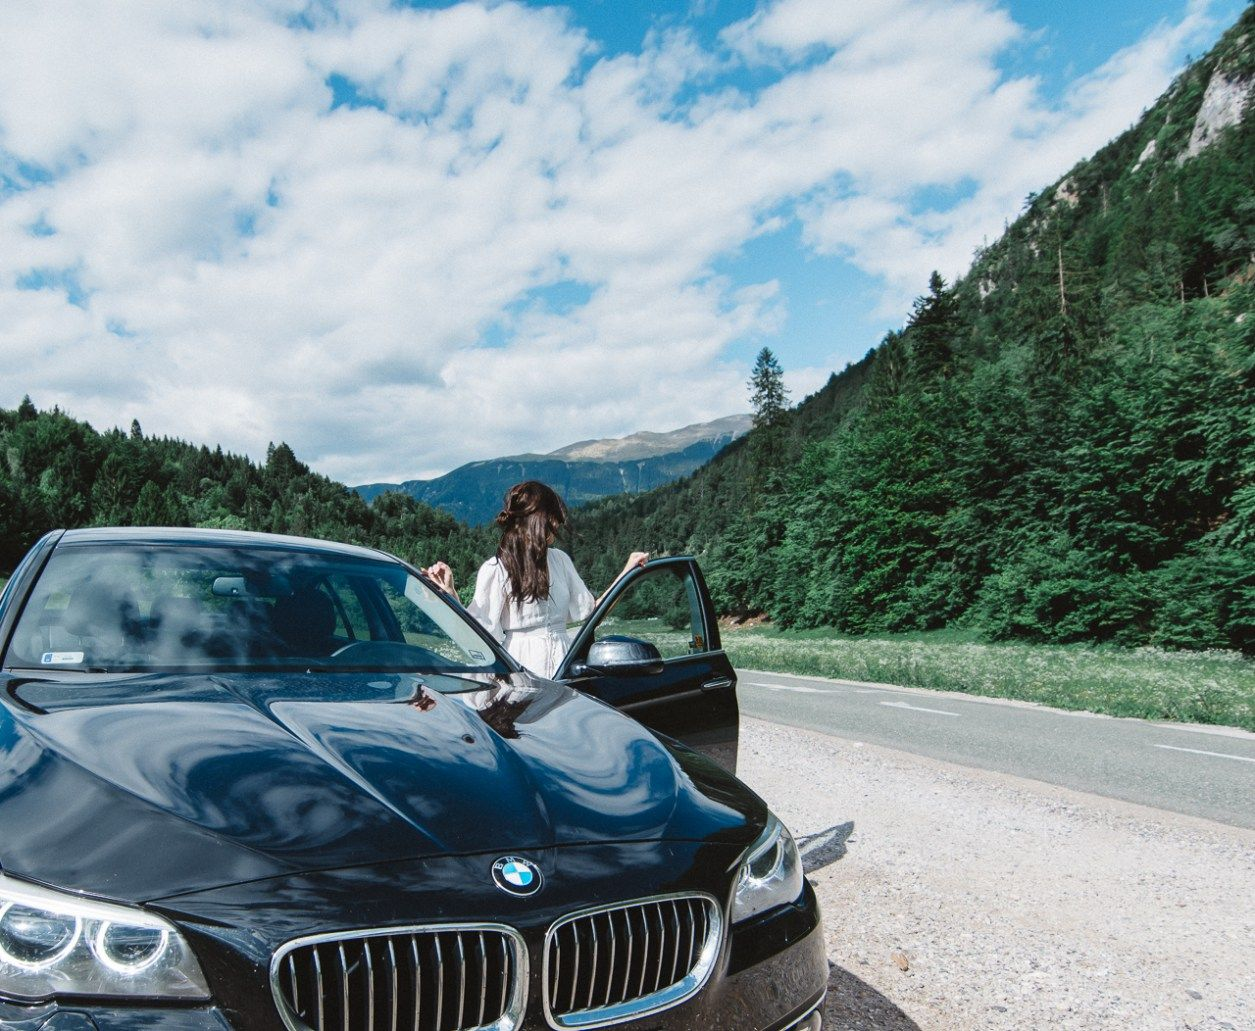 Sixt Rent A Car How To Rent Luxury Cars At Economy Prices Luxury Cars Travel Chic National Parks